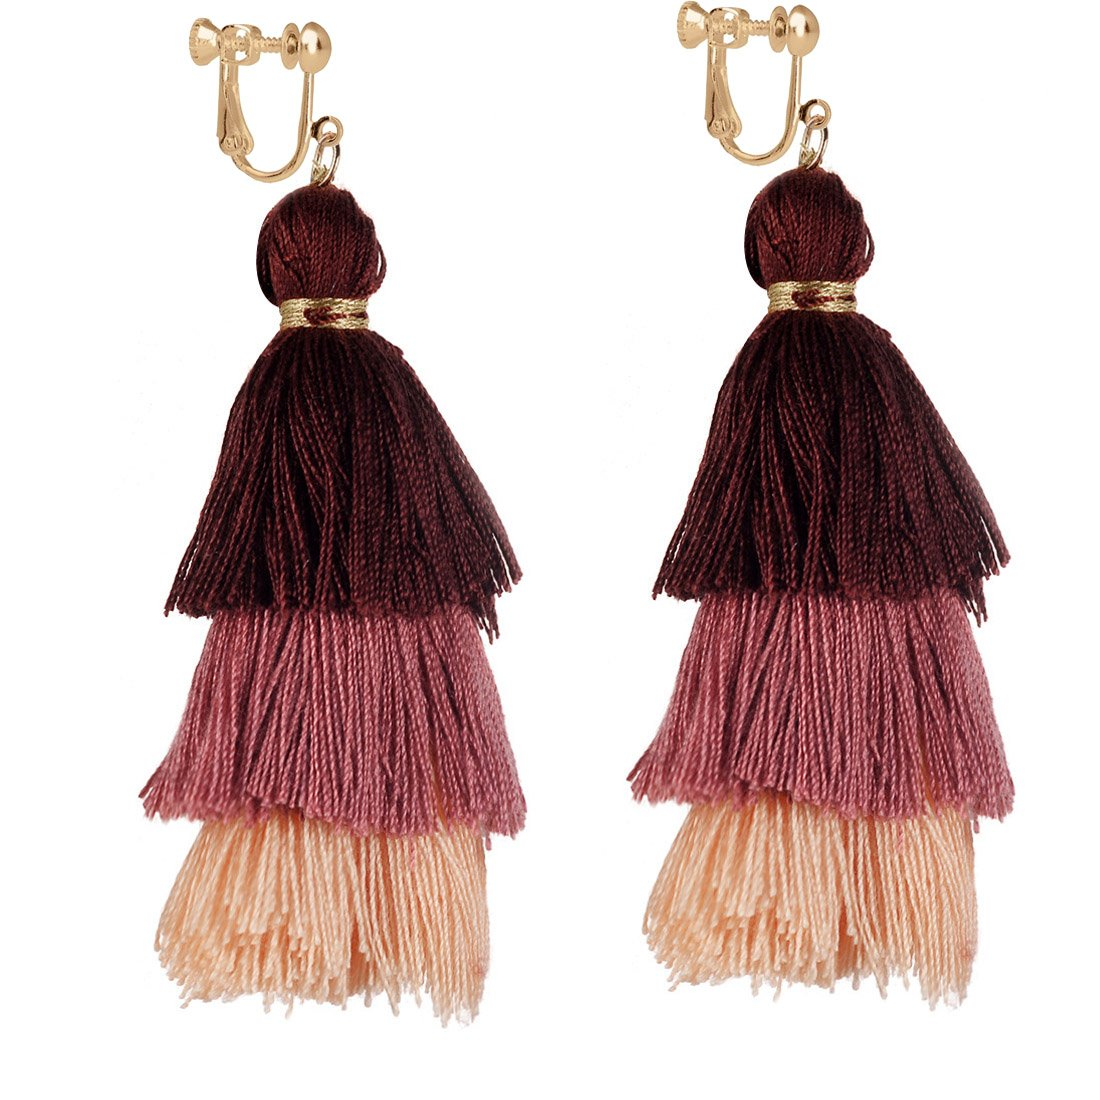 Layered Tassel Clip on Earring Big Bohemian Dangle Stud Tiered Long Thread Statement Women Brown